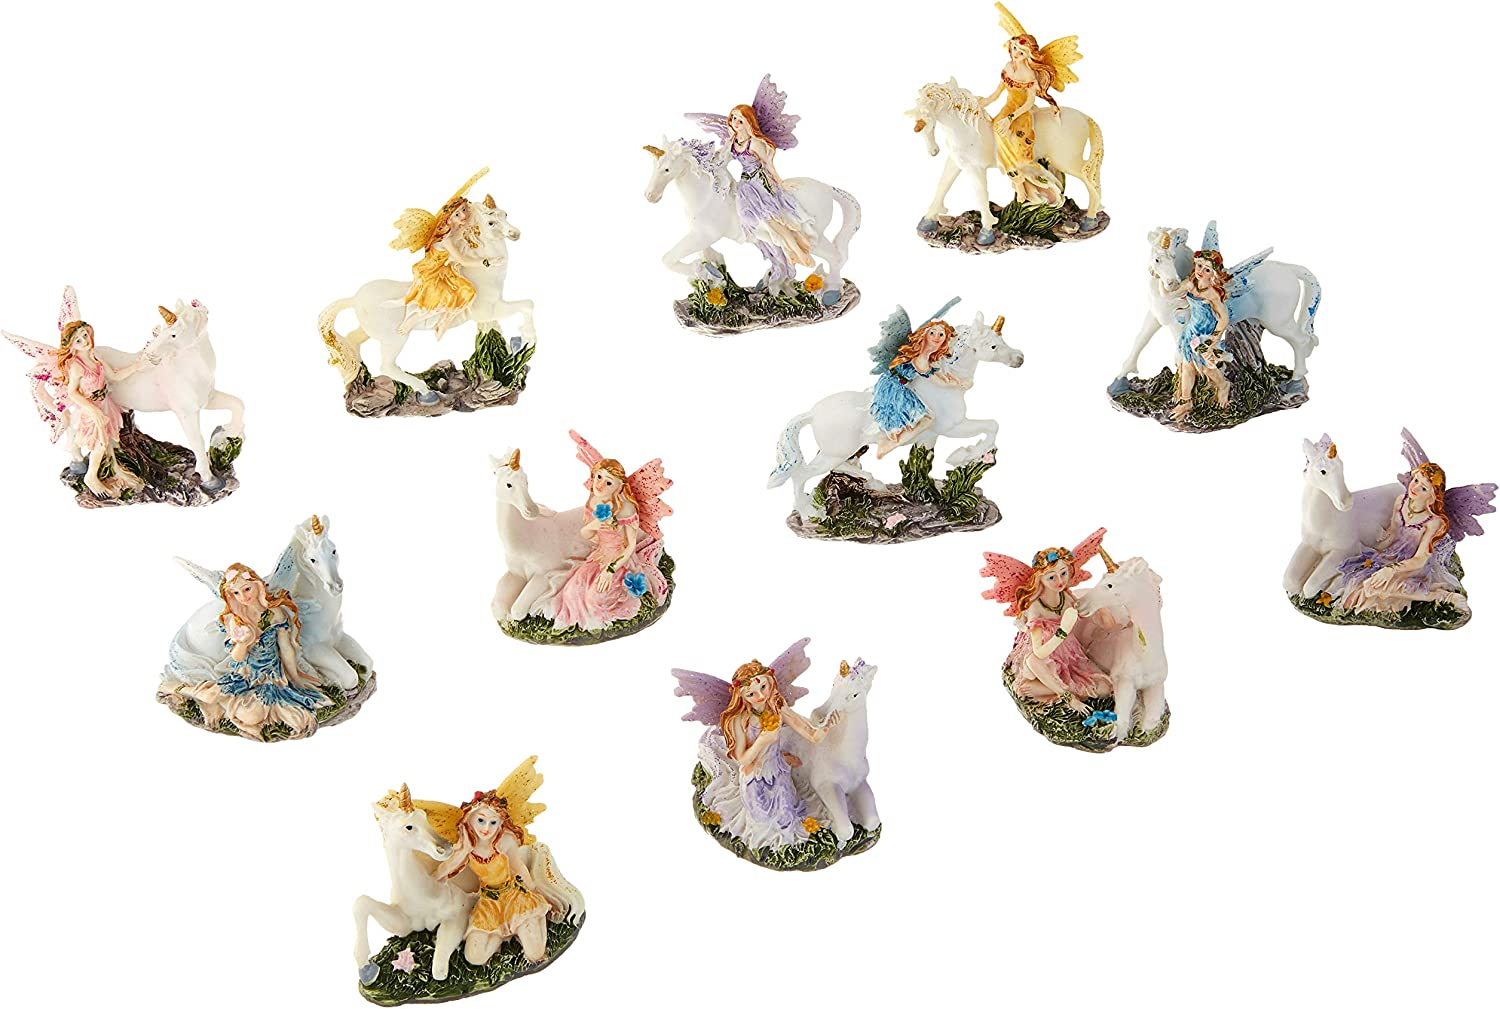 Major-Q G8091927 3  Set of 12 Miniature Fairy and Unicorn with Different colors and Poses Statue Figurine Home Decor Sculptures Polyresin